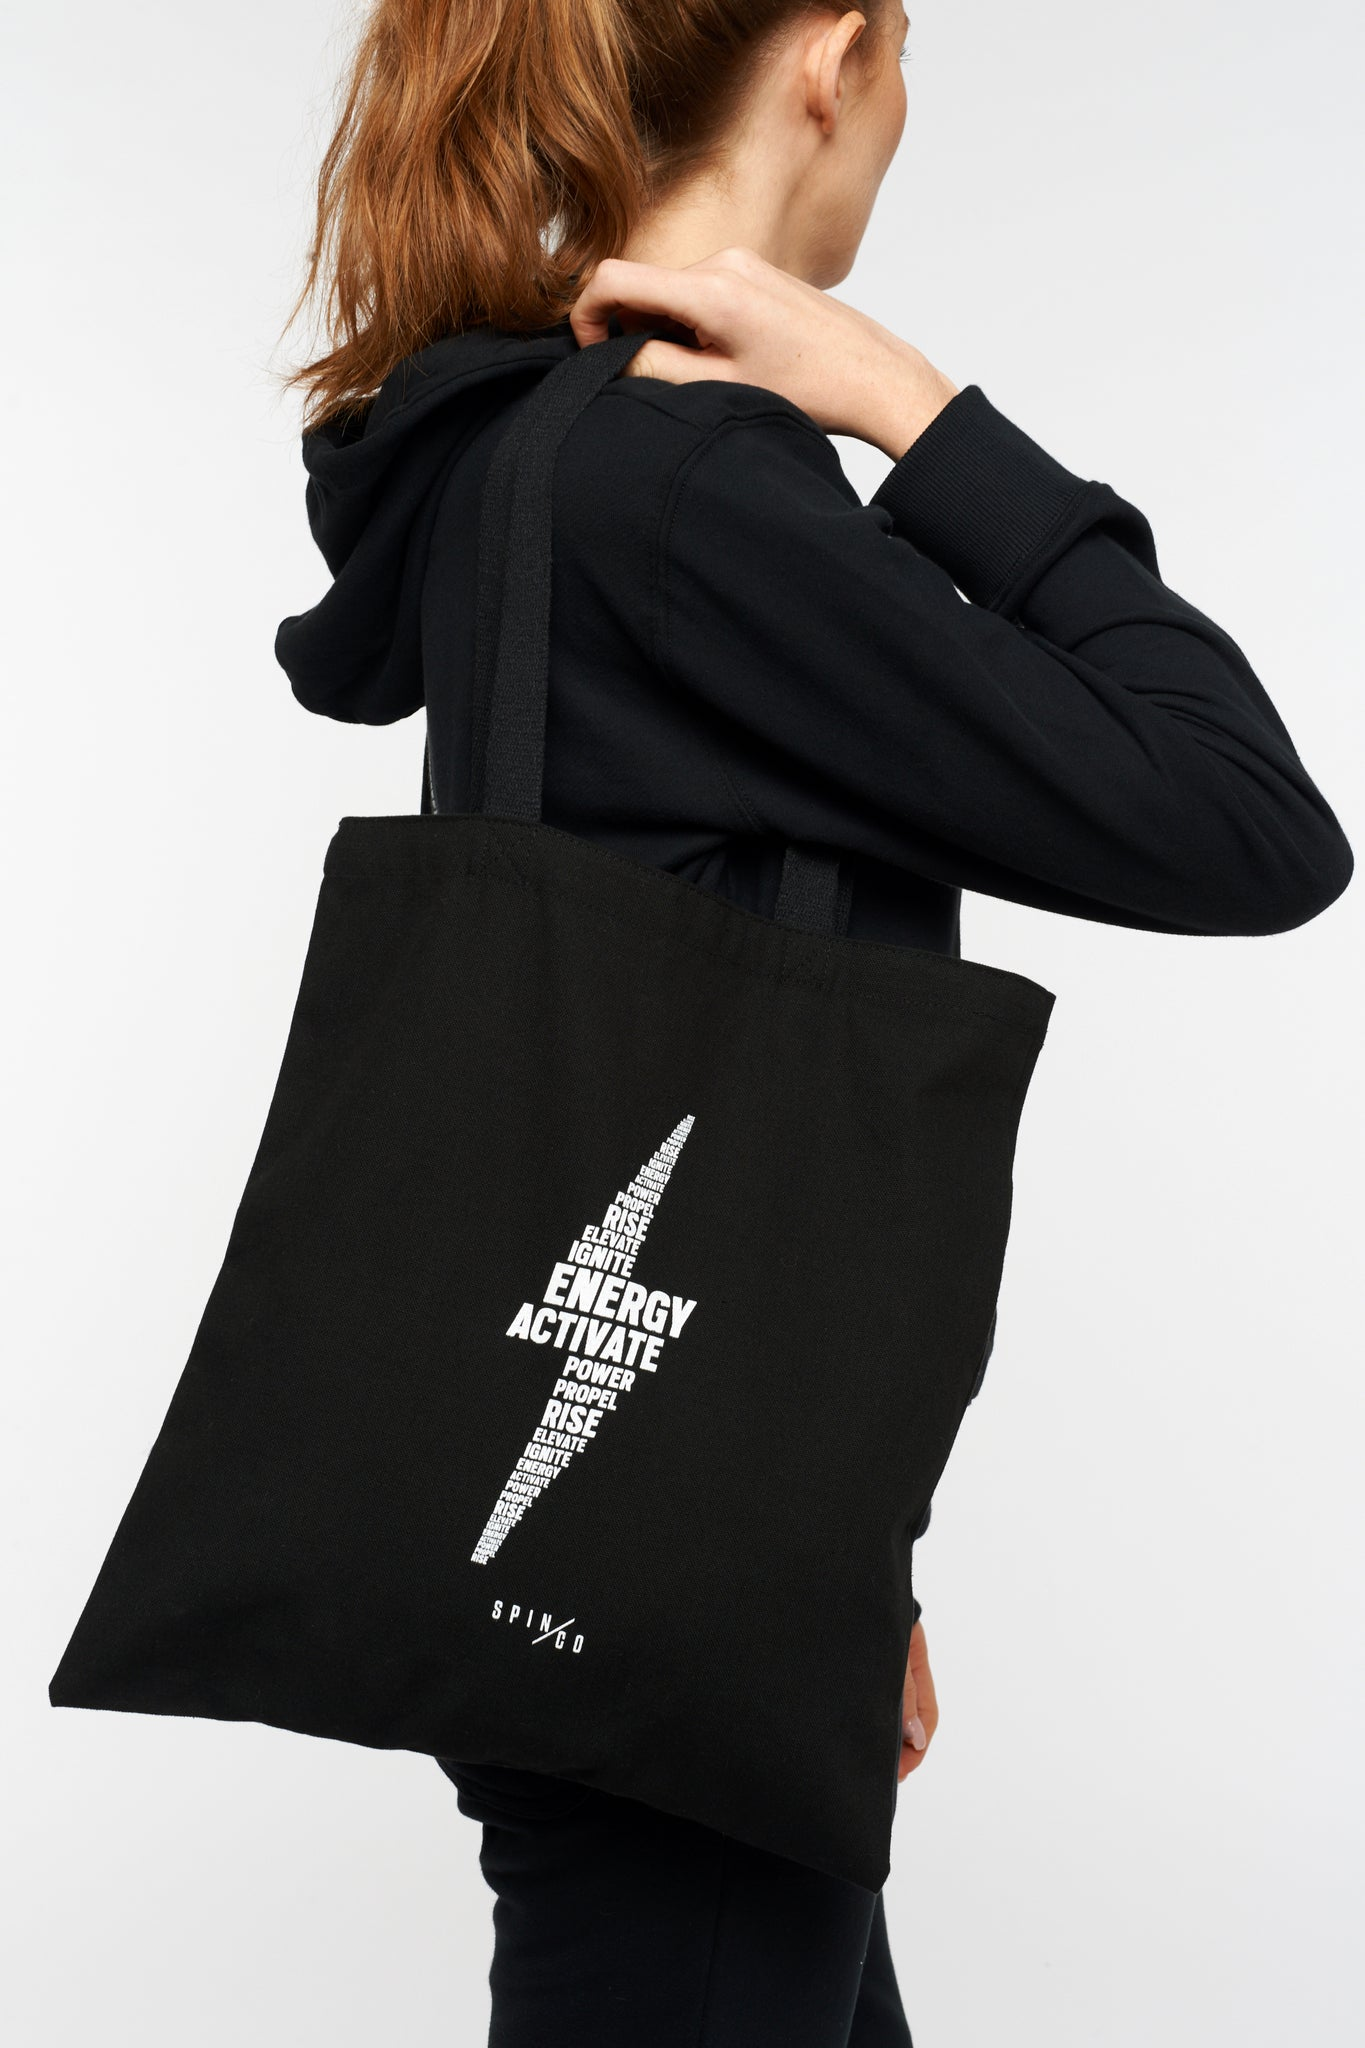 SPINCO Tote Bag